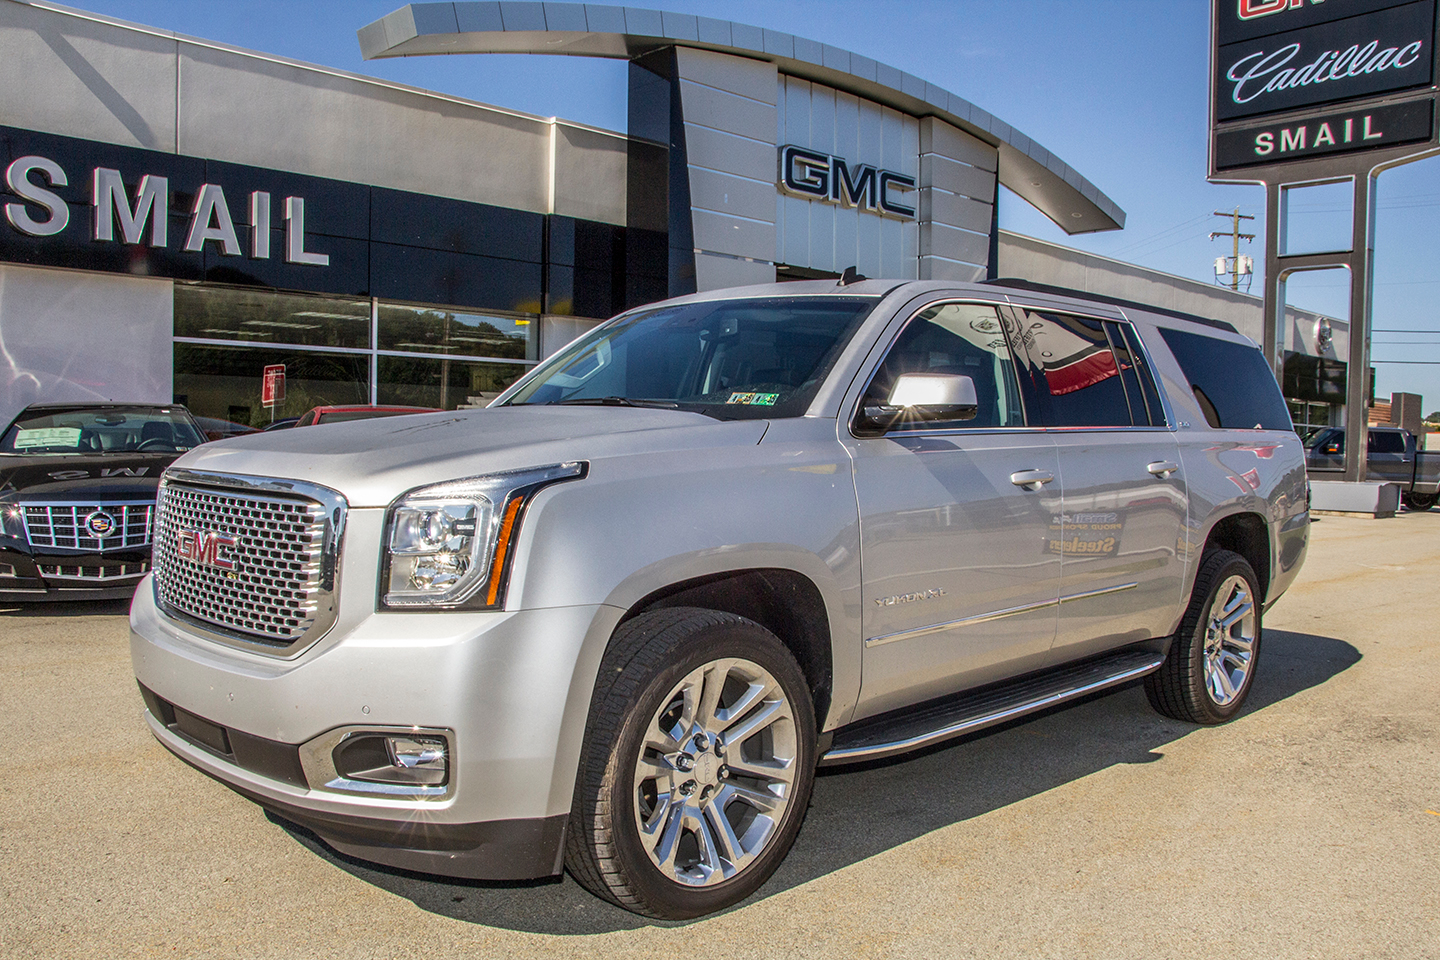 Smail Buick Gmc Cadillac At 5116 U S 30 Greensburg Pa